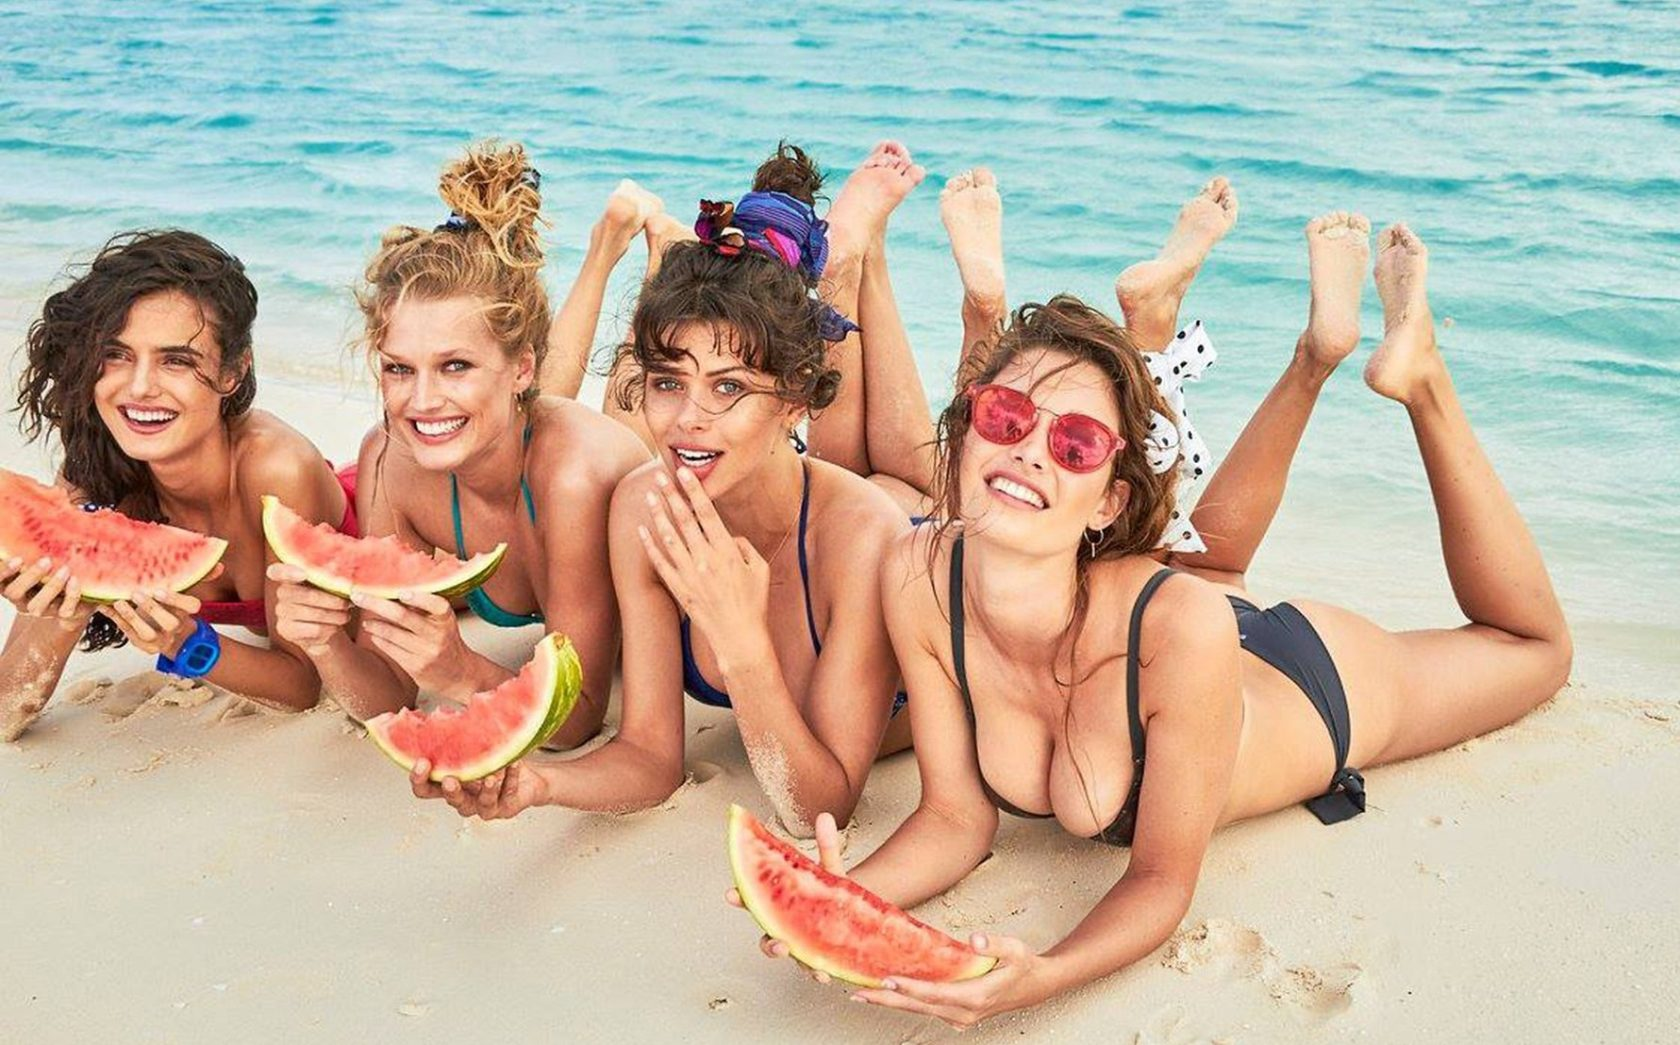 Fashion models Spanish Blanca Padilla and German Toni Garrn star in Calzedonia Spring Summer 2017 swimwear collection., Image: 329528994, License: Rights-managed, Restrictions: EDITORIAL USE ONLY, Model Release: no, Credit line: Profimedia, Balawa Pics